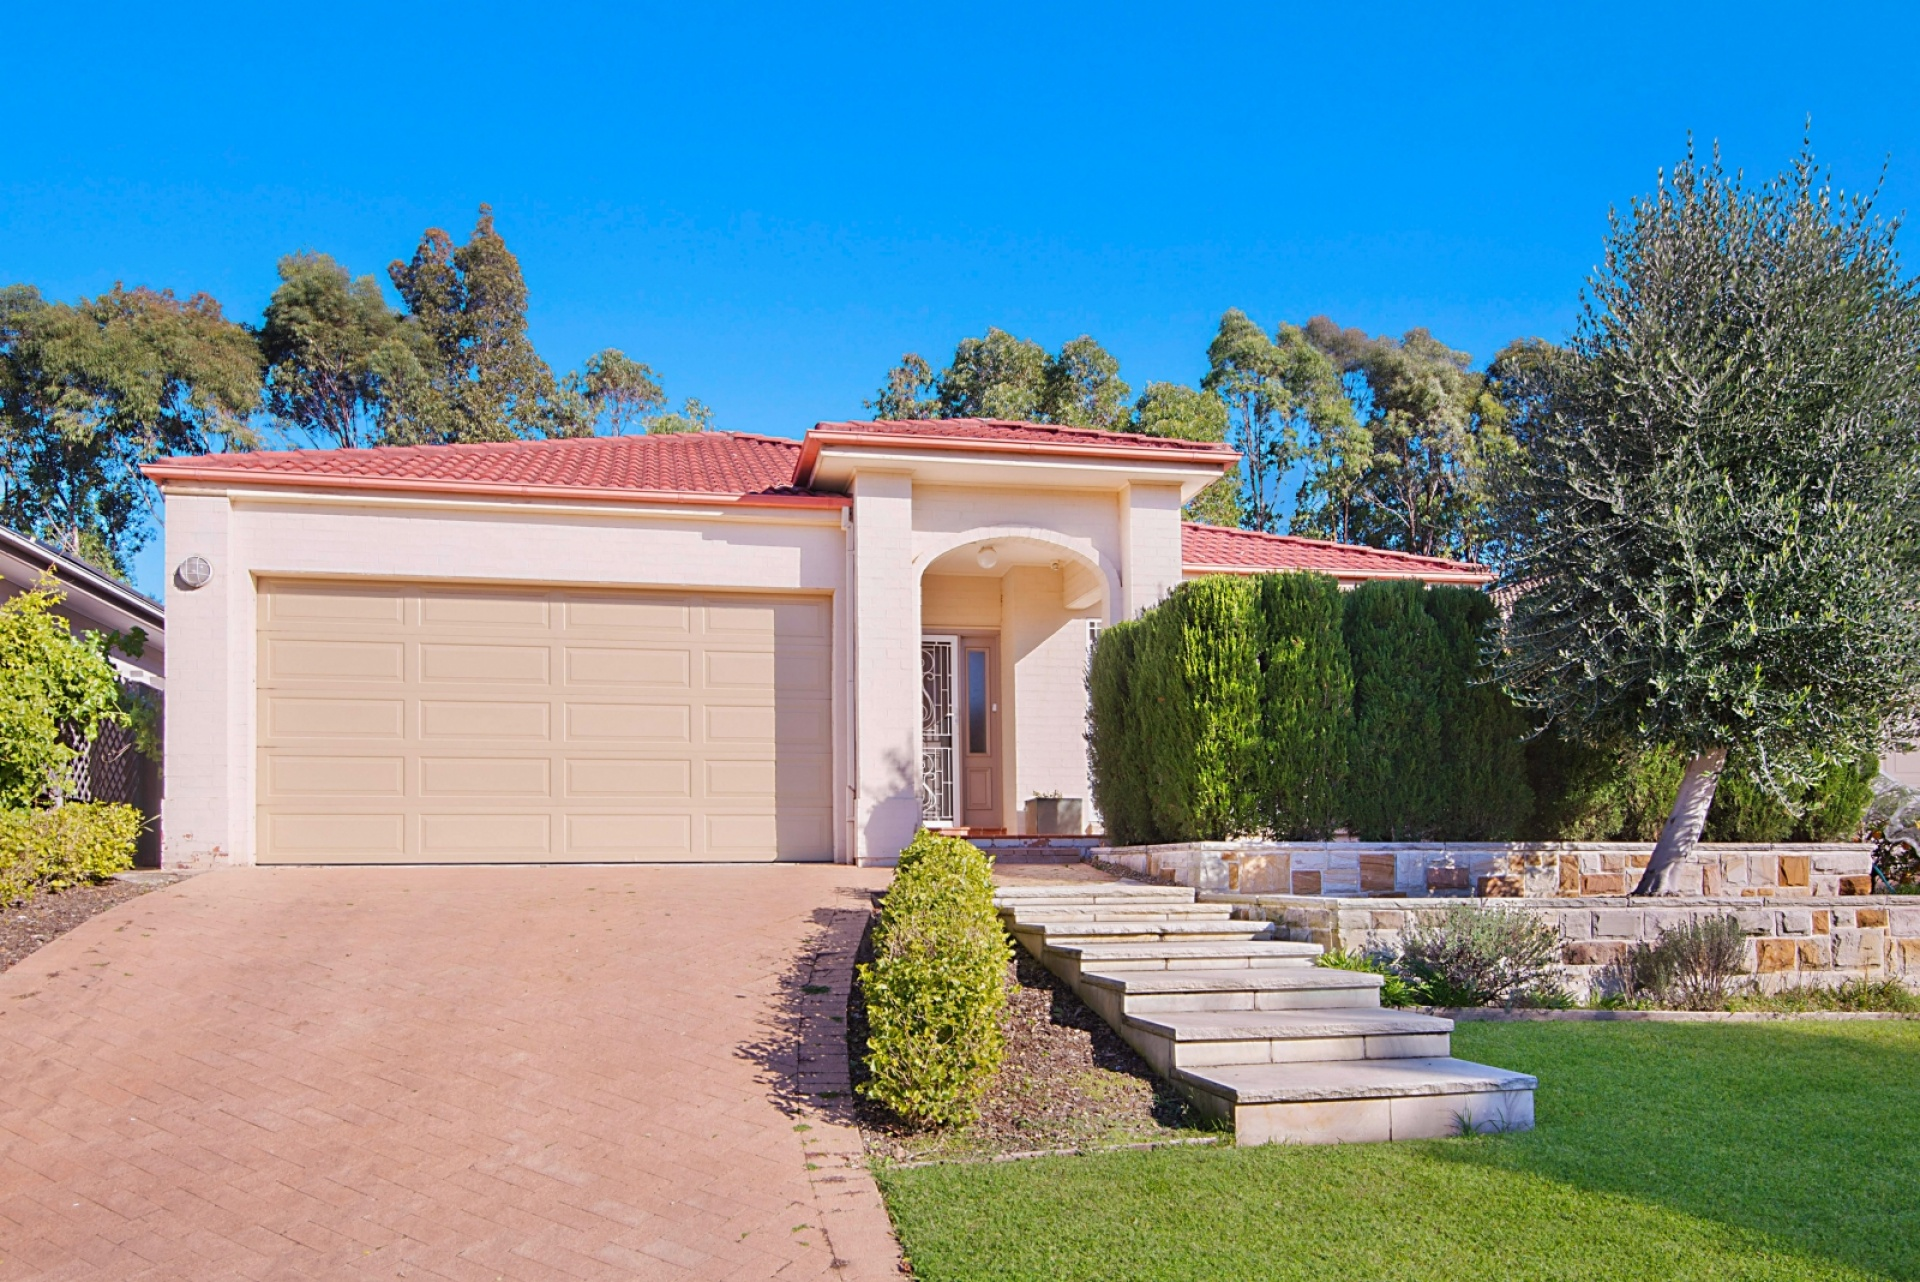 4 Rooms, House, Sold , Skye Court, 2 Bathrooms, Listing ID 1293, KELLYVILLE, NSW, Australia, 2155,